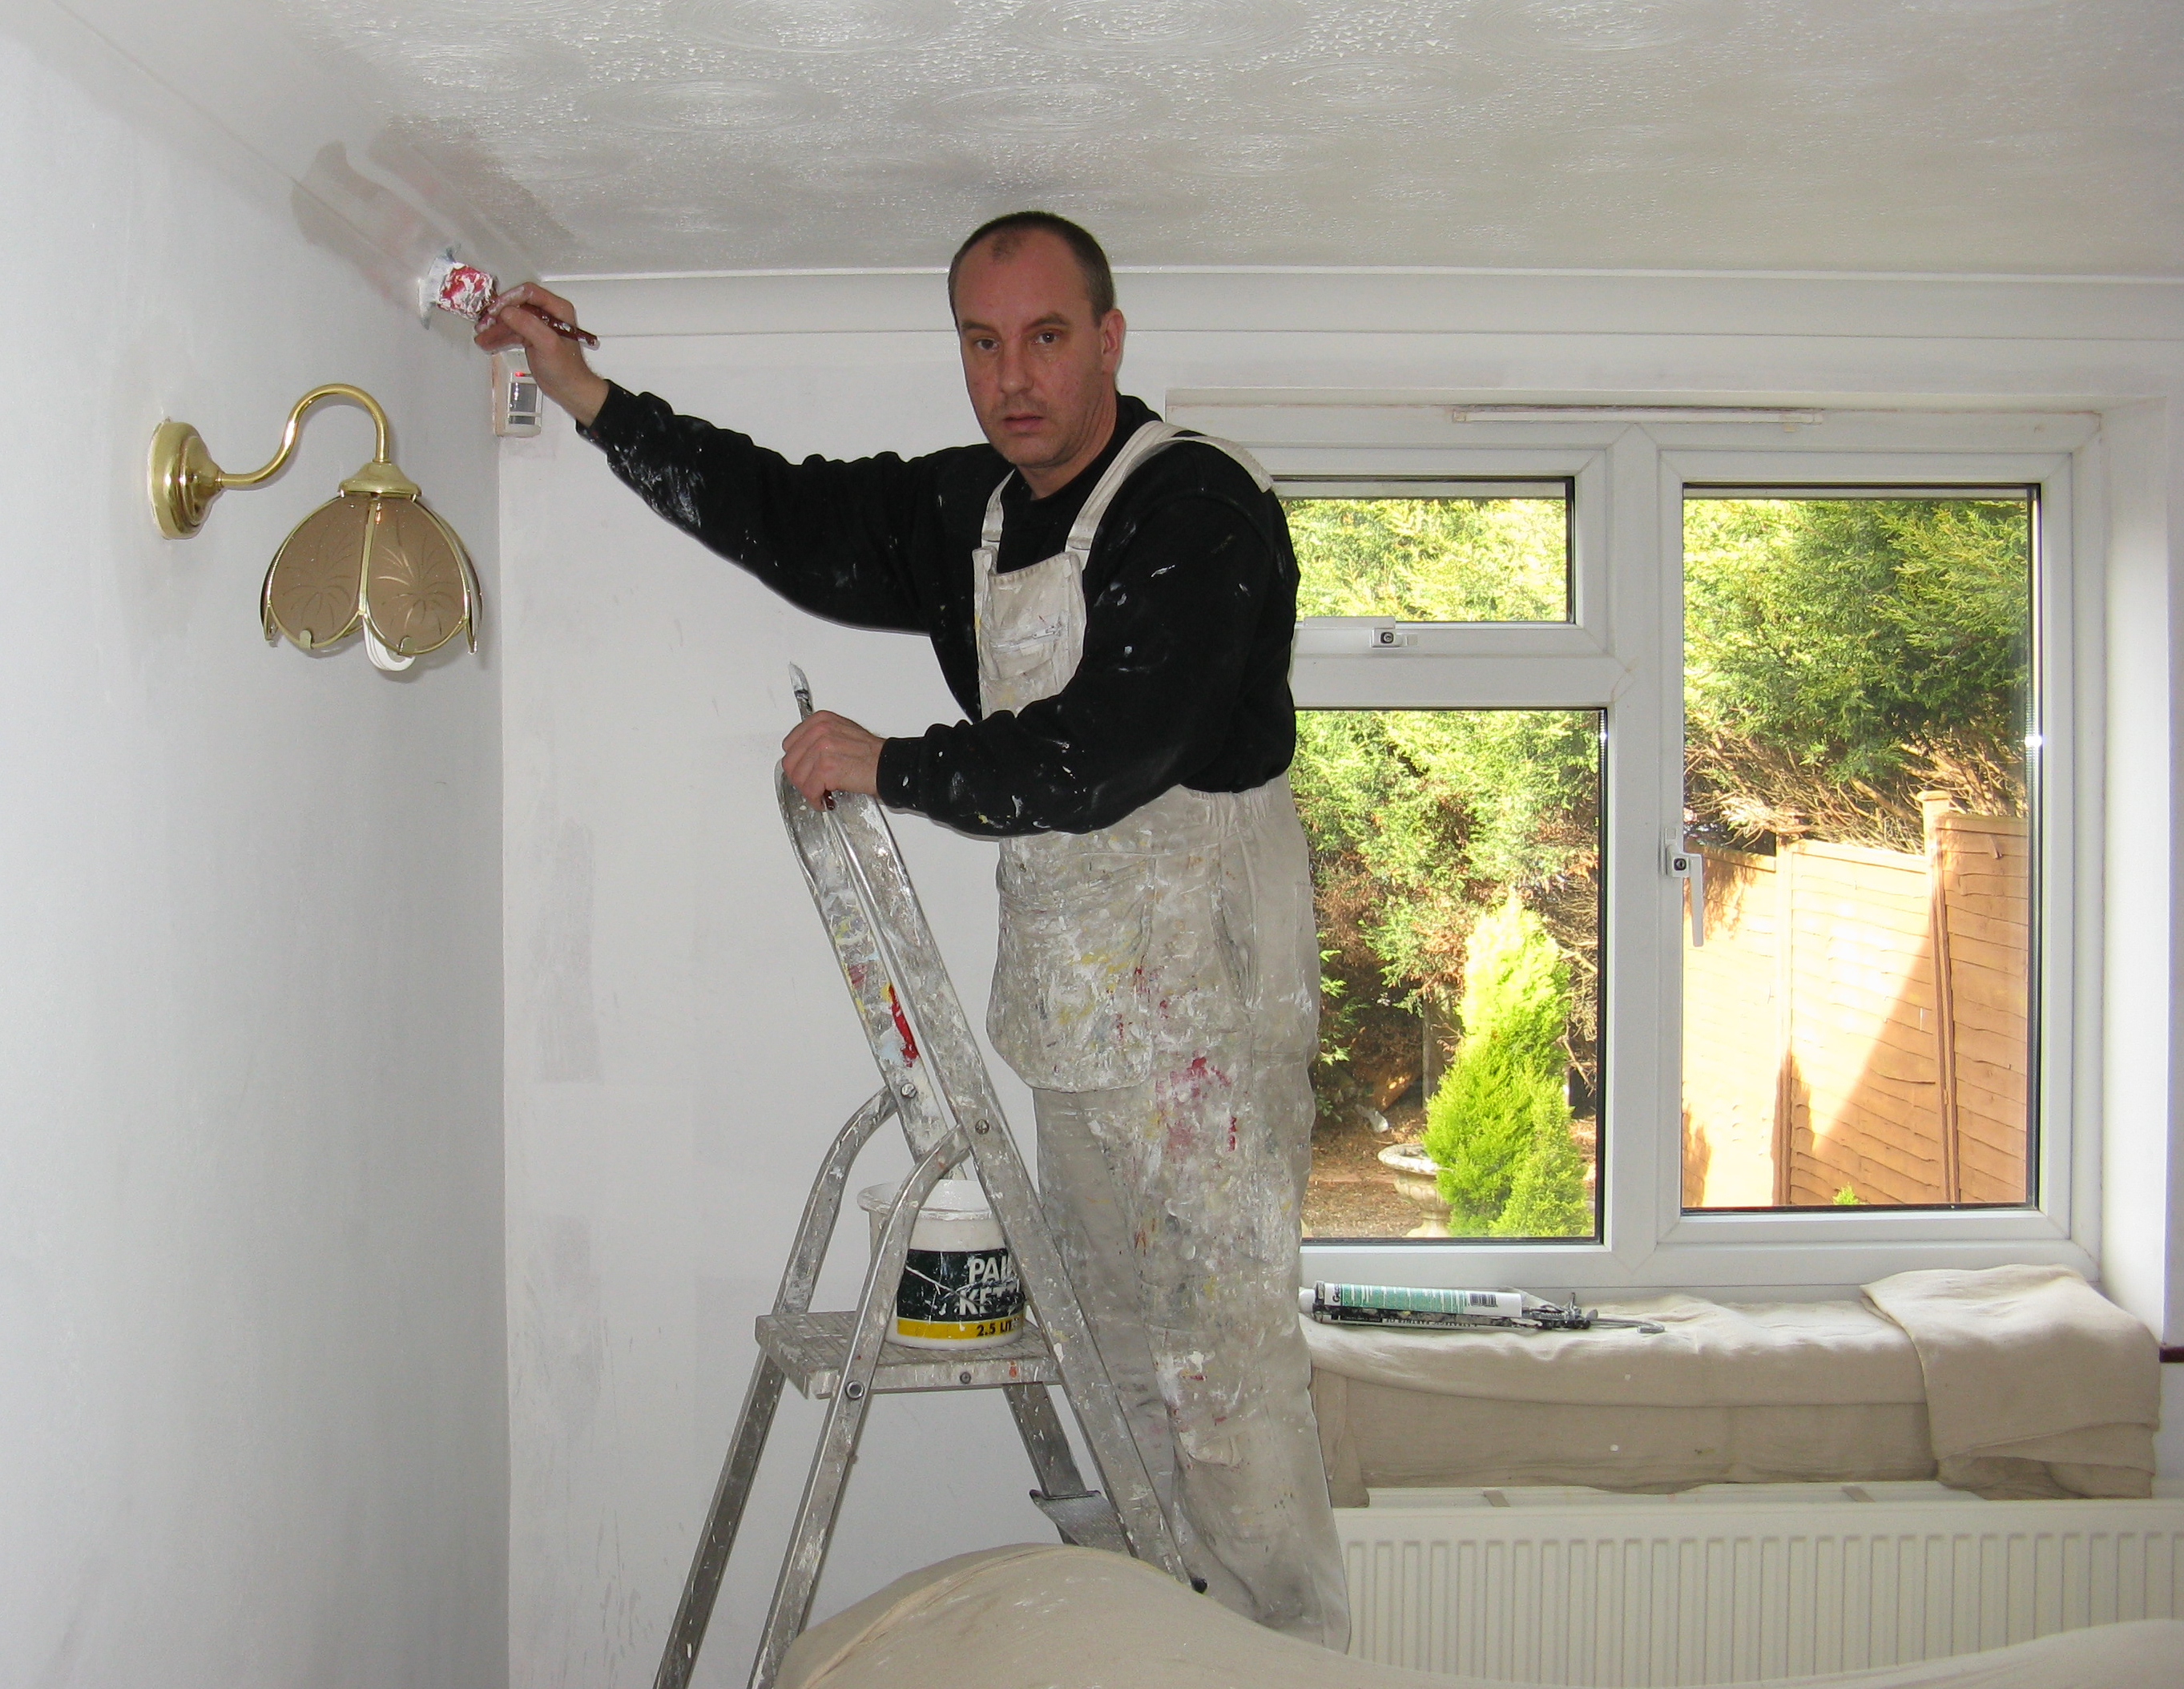 Important questions to ask before hiring a painter - Ideas by Mr Right